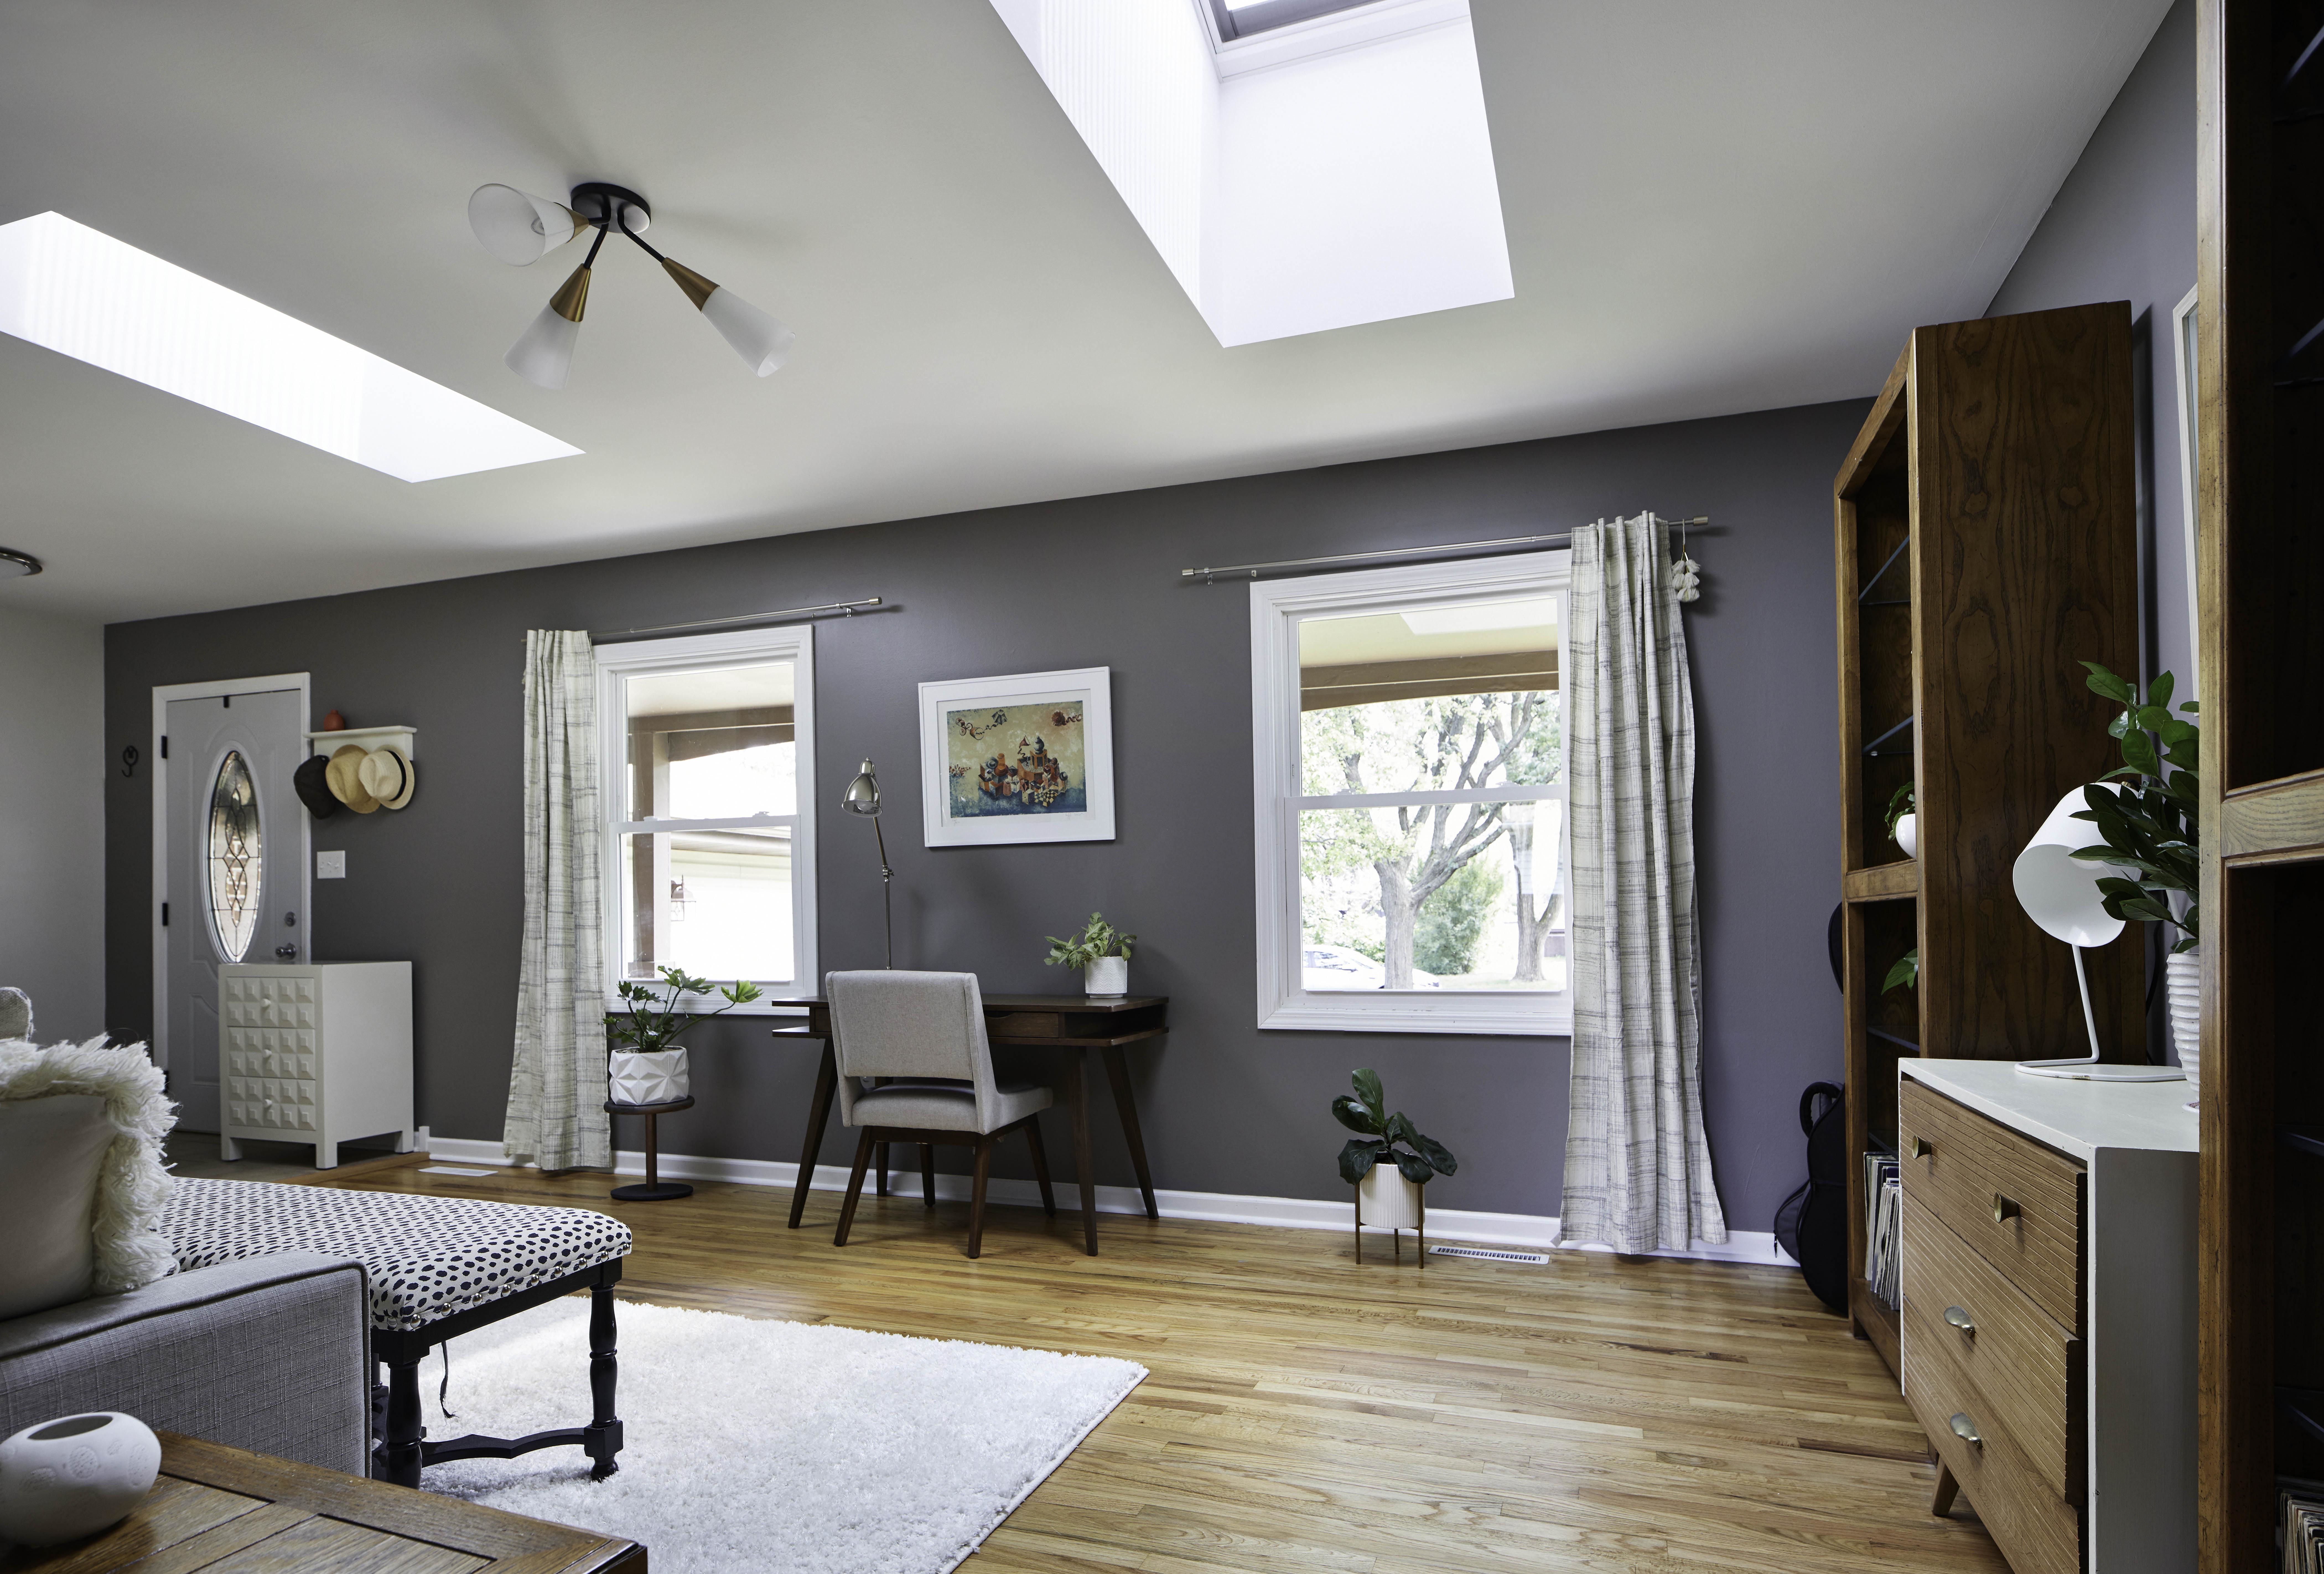 living room with two skylights and a home workspace